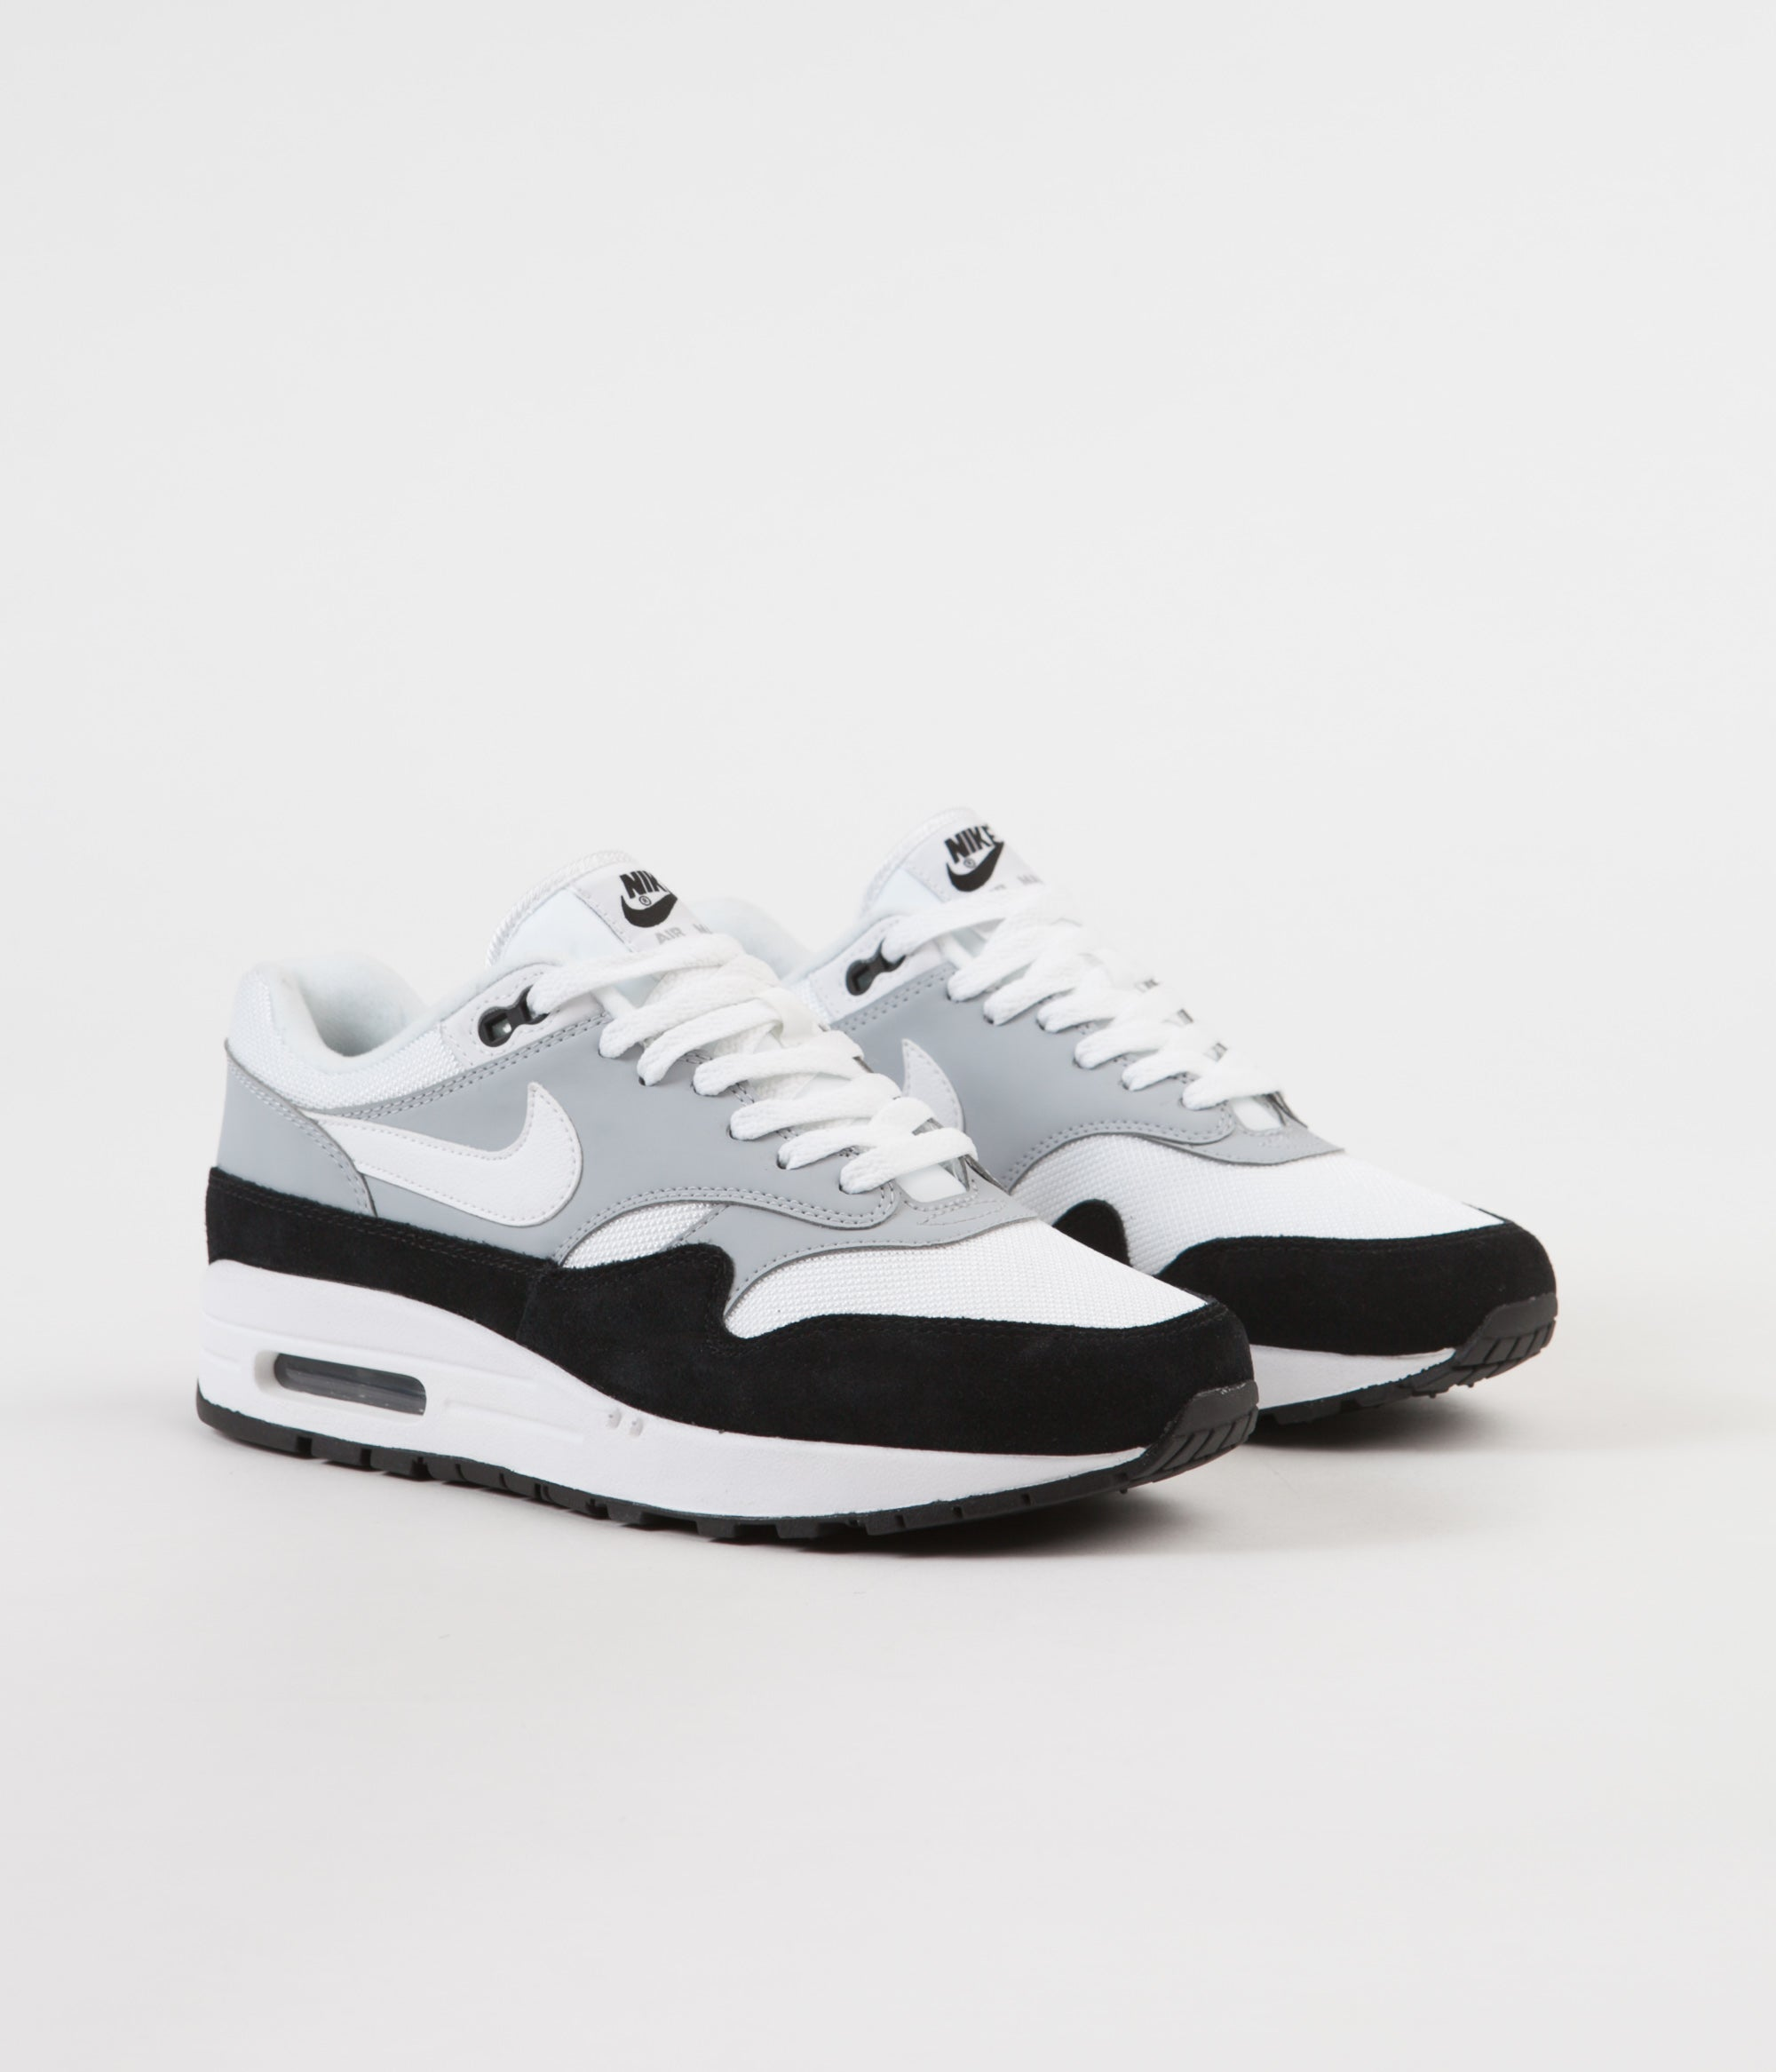 best sneakers ec85f b1cd9 ... Nike Air Max 1 Shoes - Wolf Grey   White - Black ...